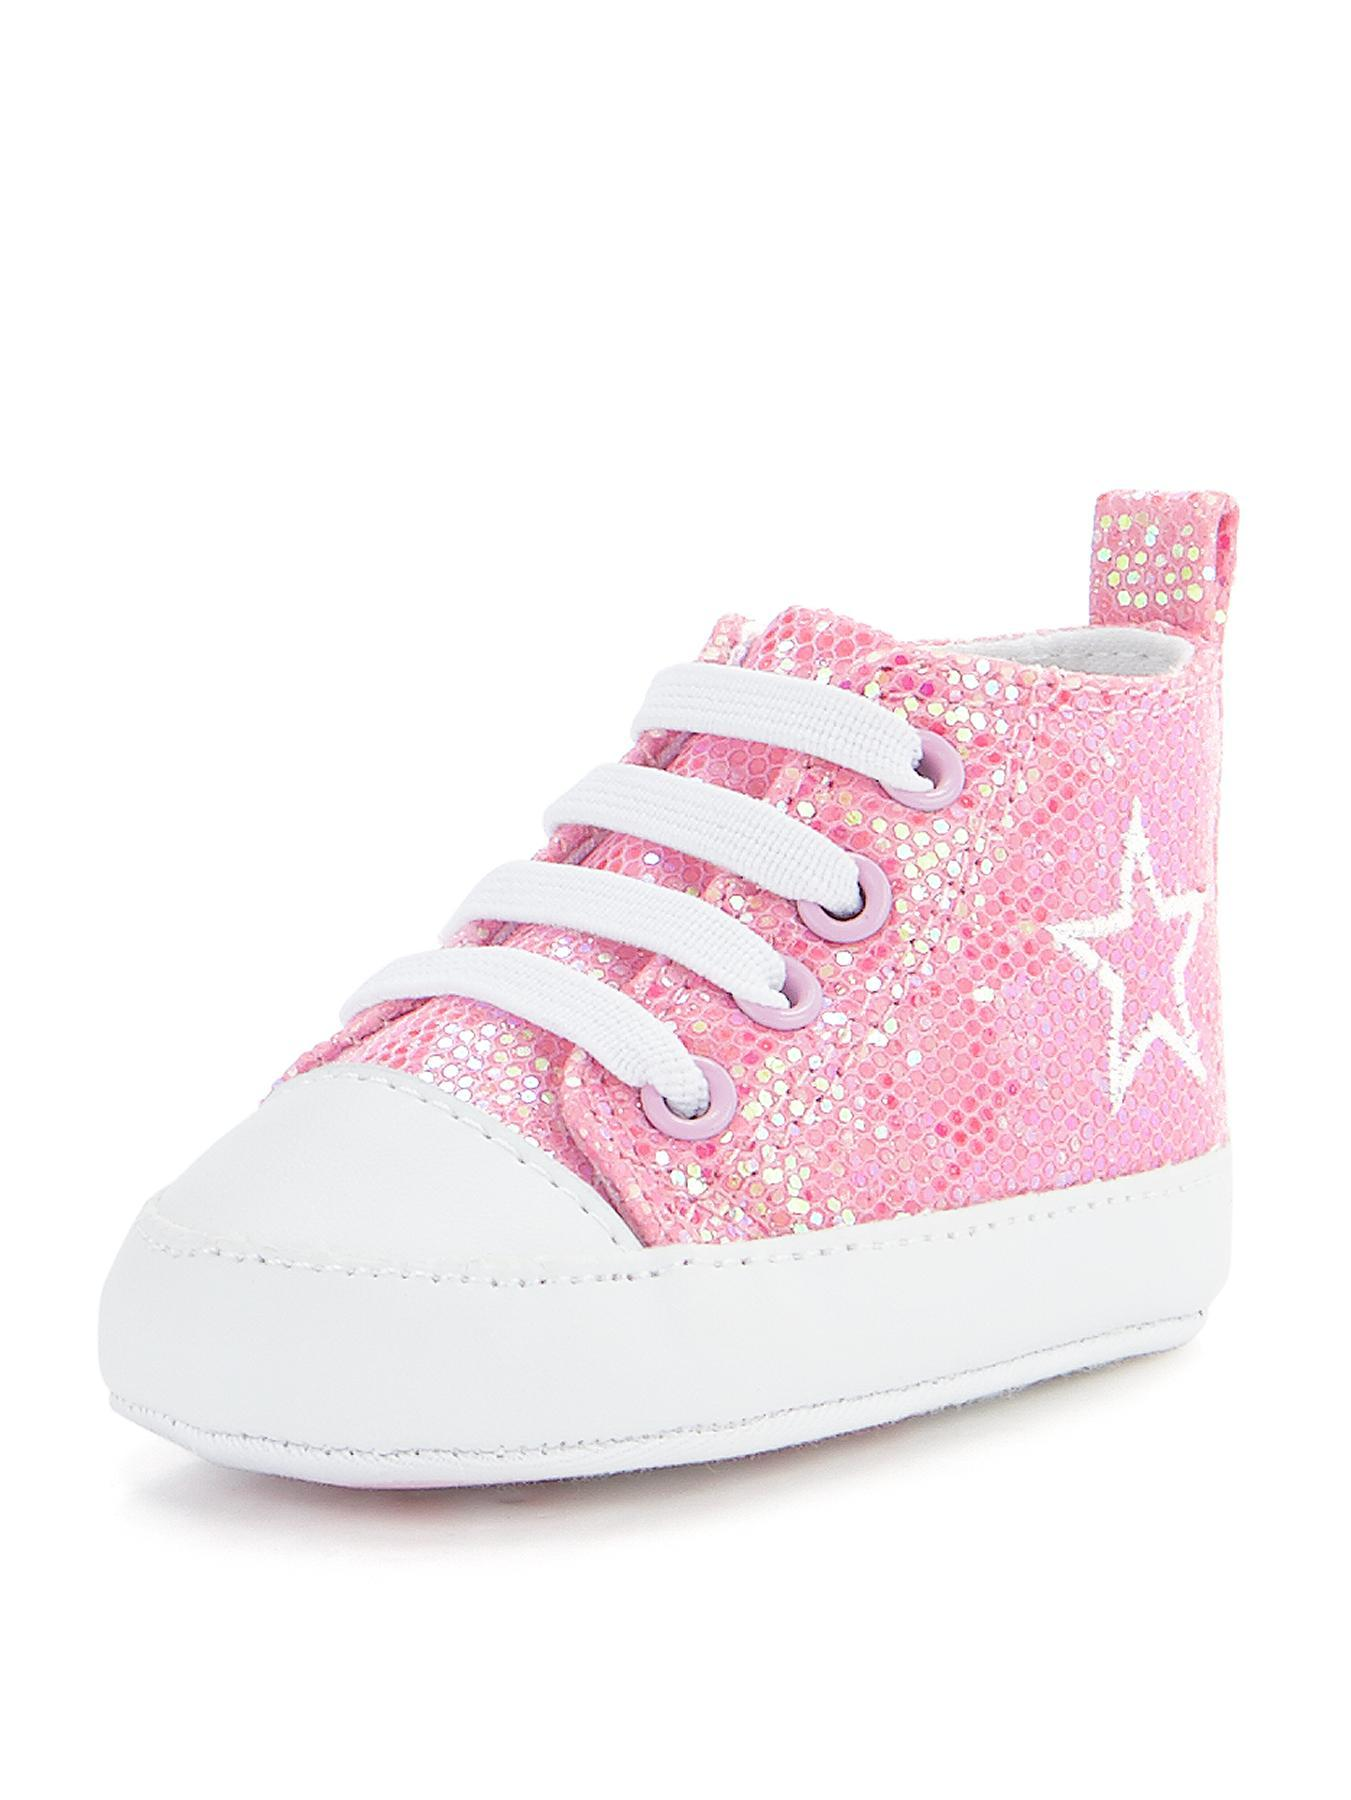 April Plimsolls Pram Shoes, Pink